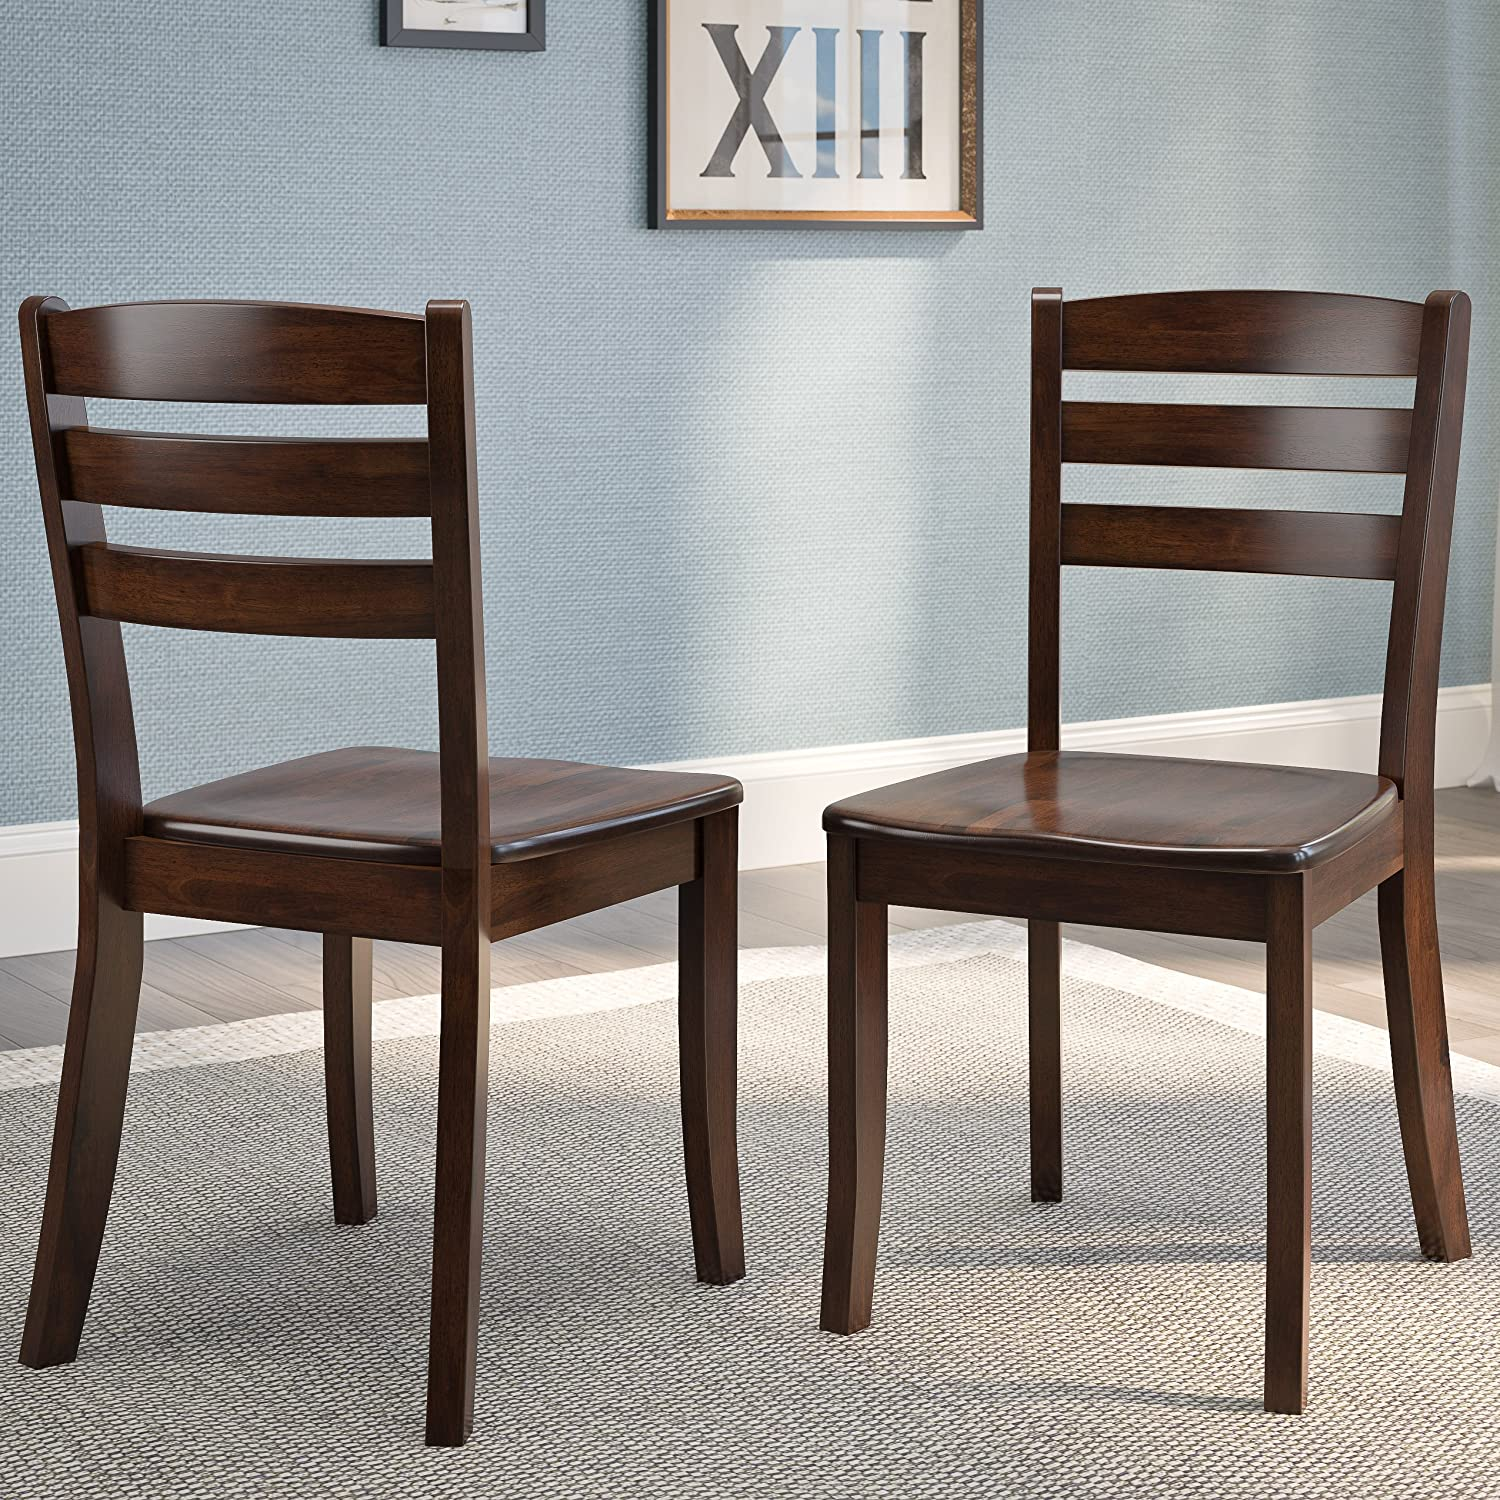 CorLiving CorLiving DSH-190-C Cappuccino Stained Solid Wood Dining Chairs with Horizontal Slat Backrest Cappuccino Set of 2